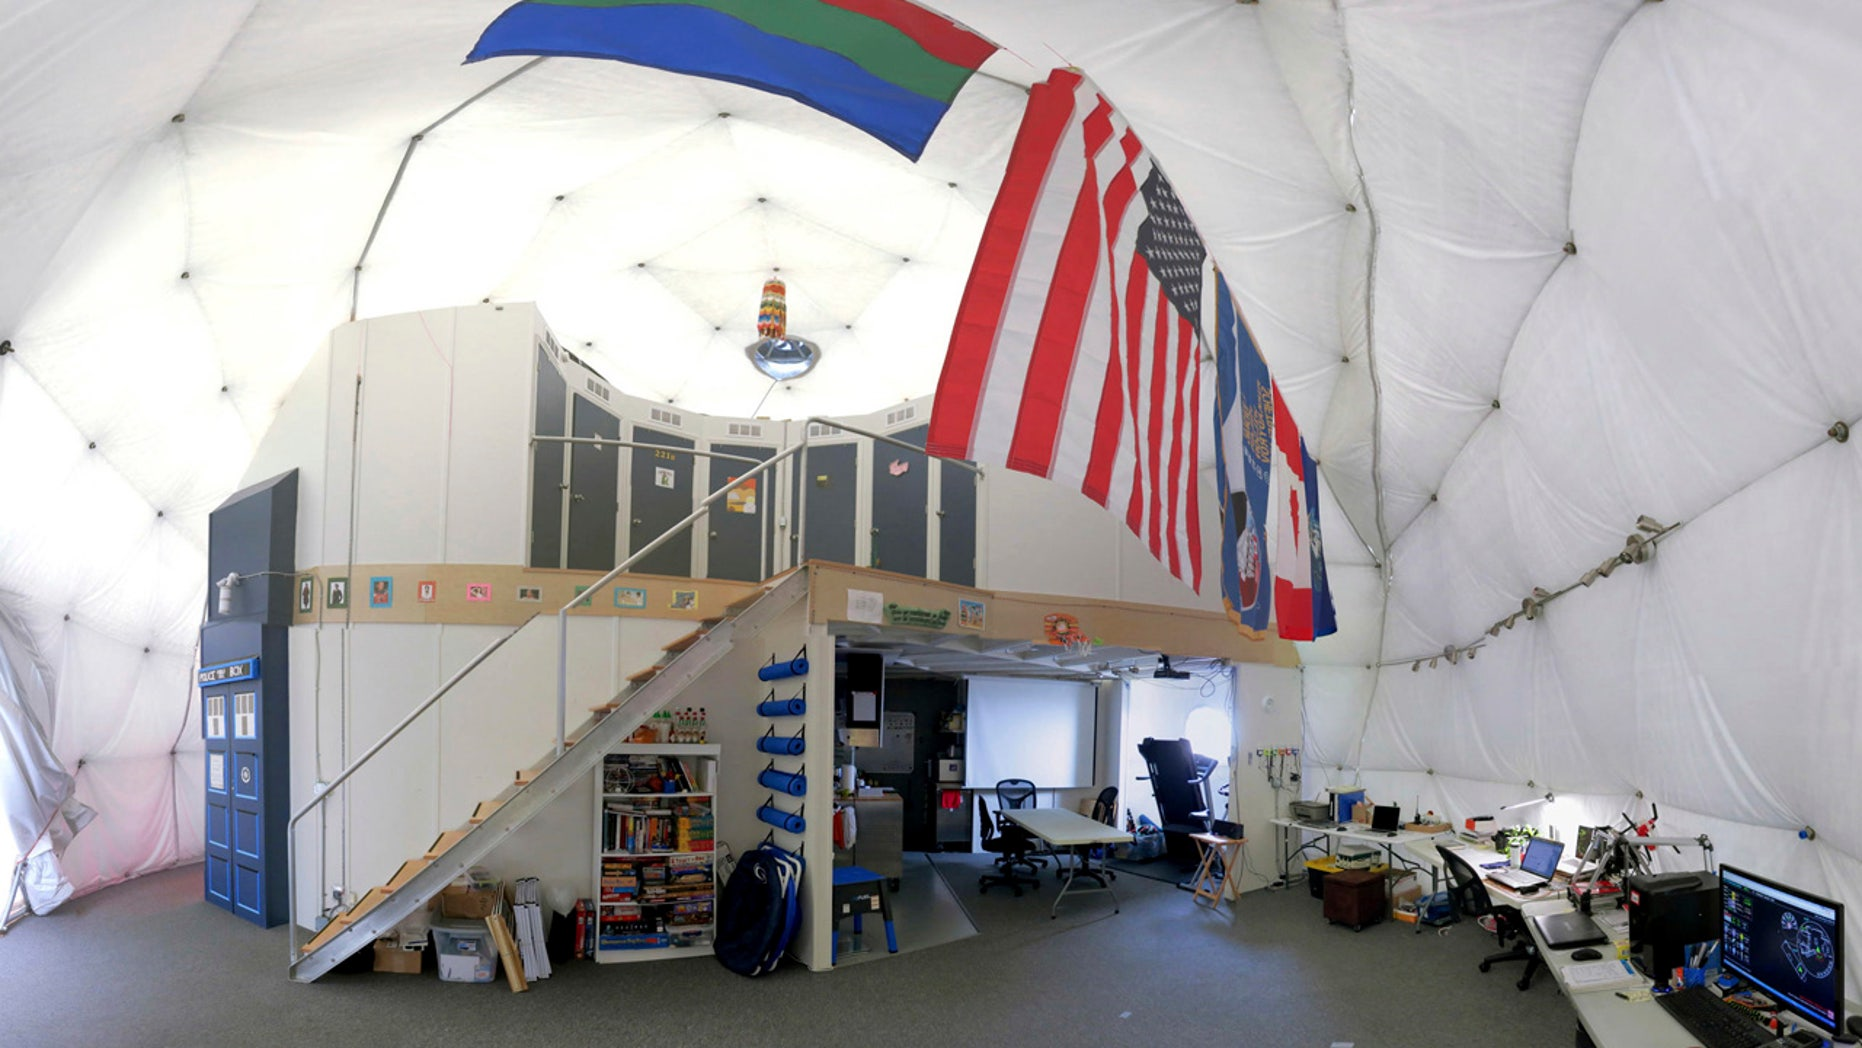 This Aug. 9, 2015 photo provided by the University of Hawaii shows the interior of the domed structure that will house six researchers for eight months in an environment meant to simulate an expedition to Mars, on Mauna Loa on the Big Island of Hawaii.